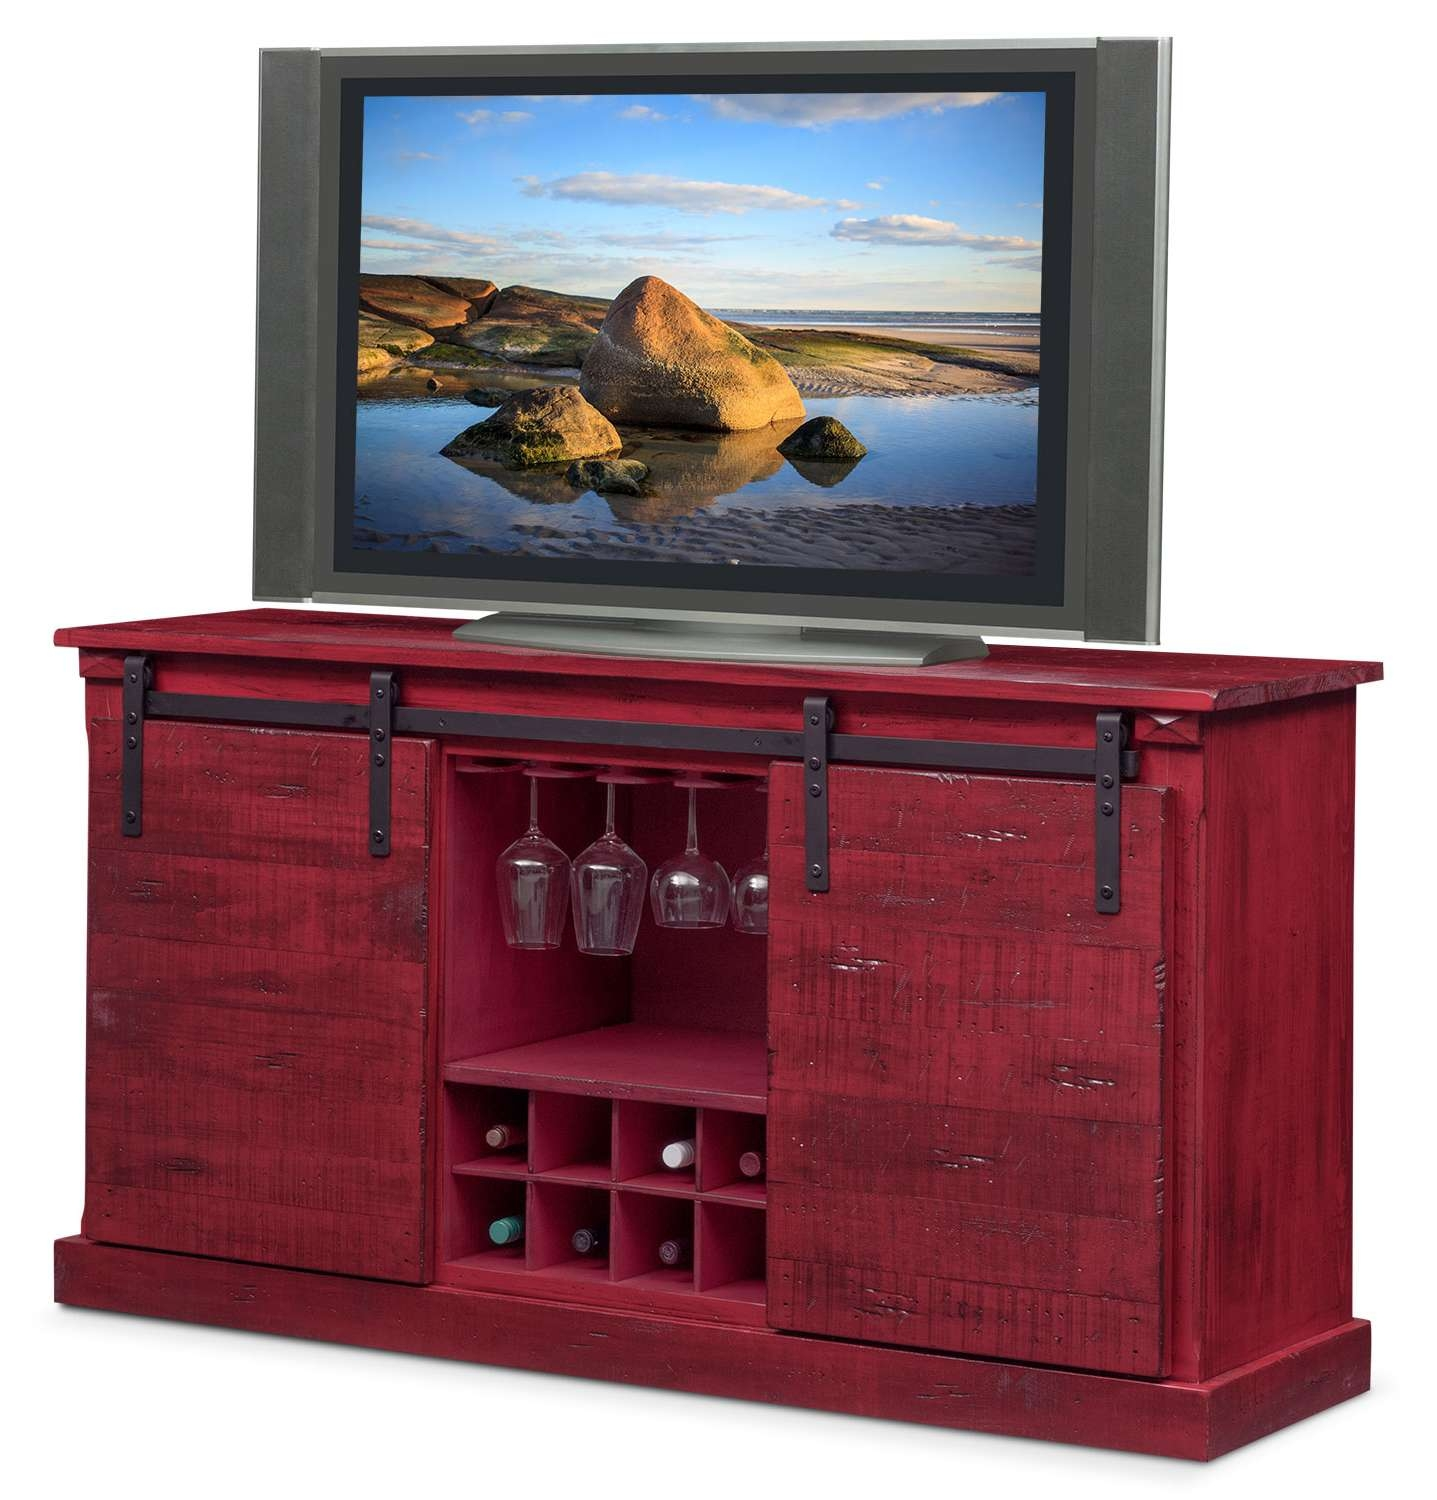 Buffet & Sideboard Cabinets | Value City Furniture And Mattresses In Red Sideboards Buffets (View 2 of 20)